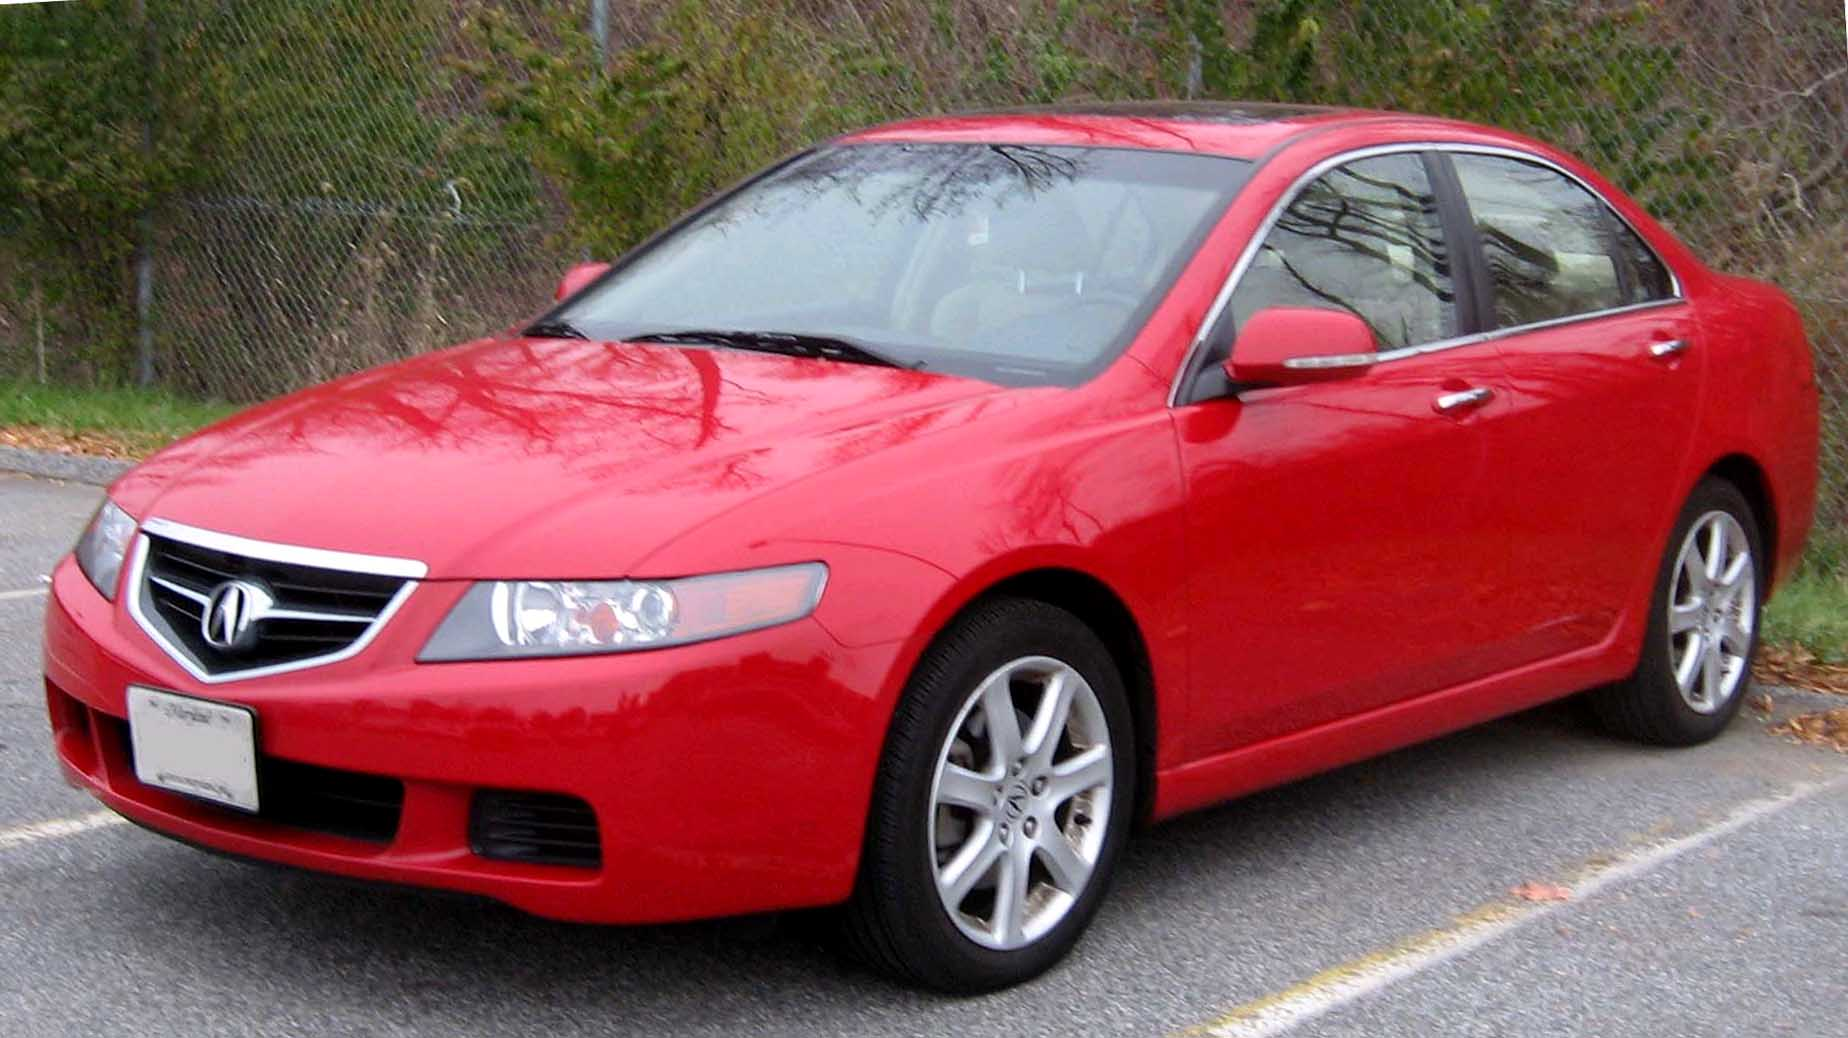 https://upload.wikimedia.org/wikipedia/commons/9/93/Acura-TSX.jpg